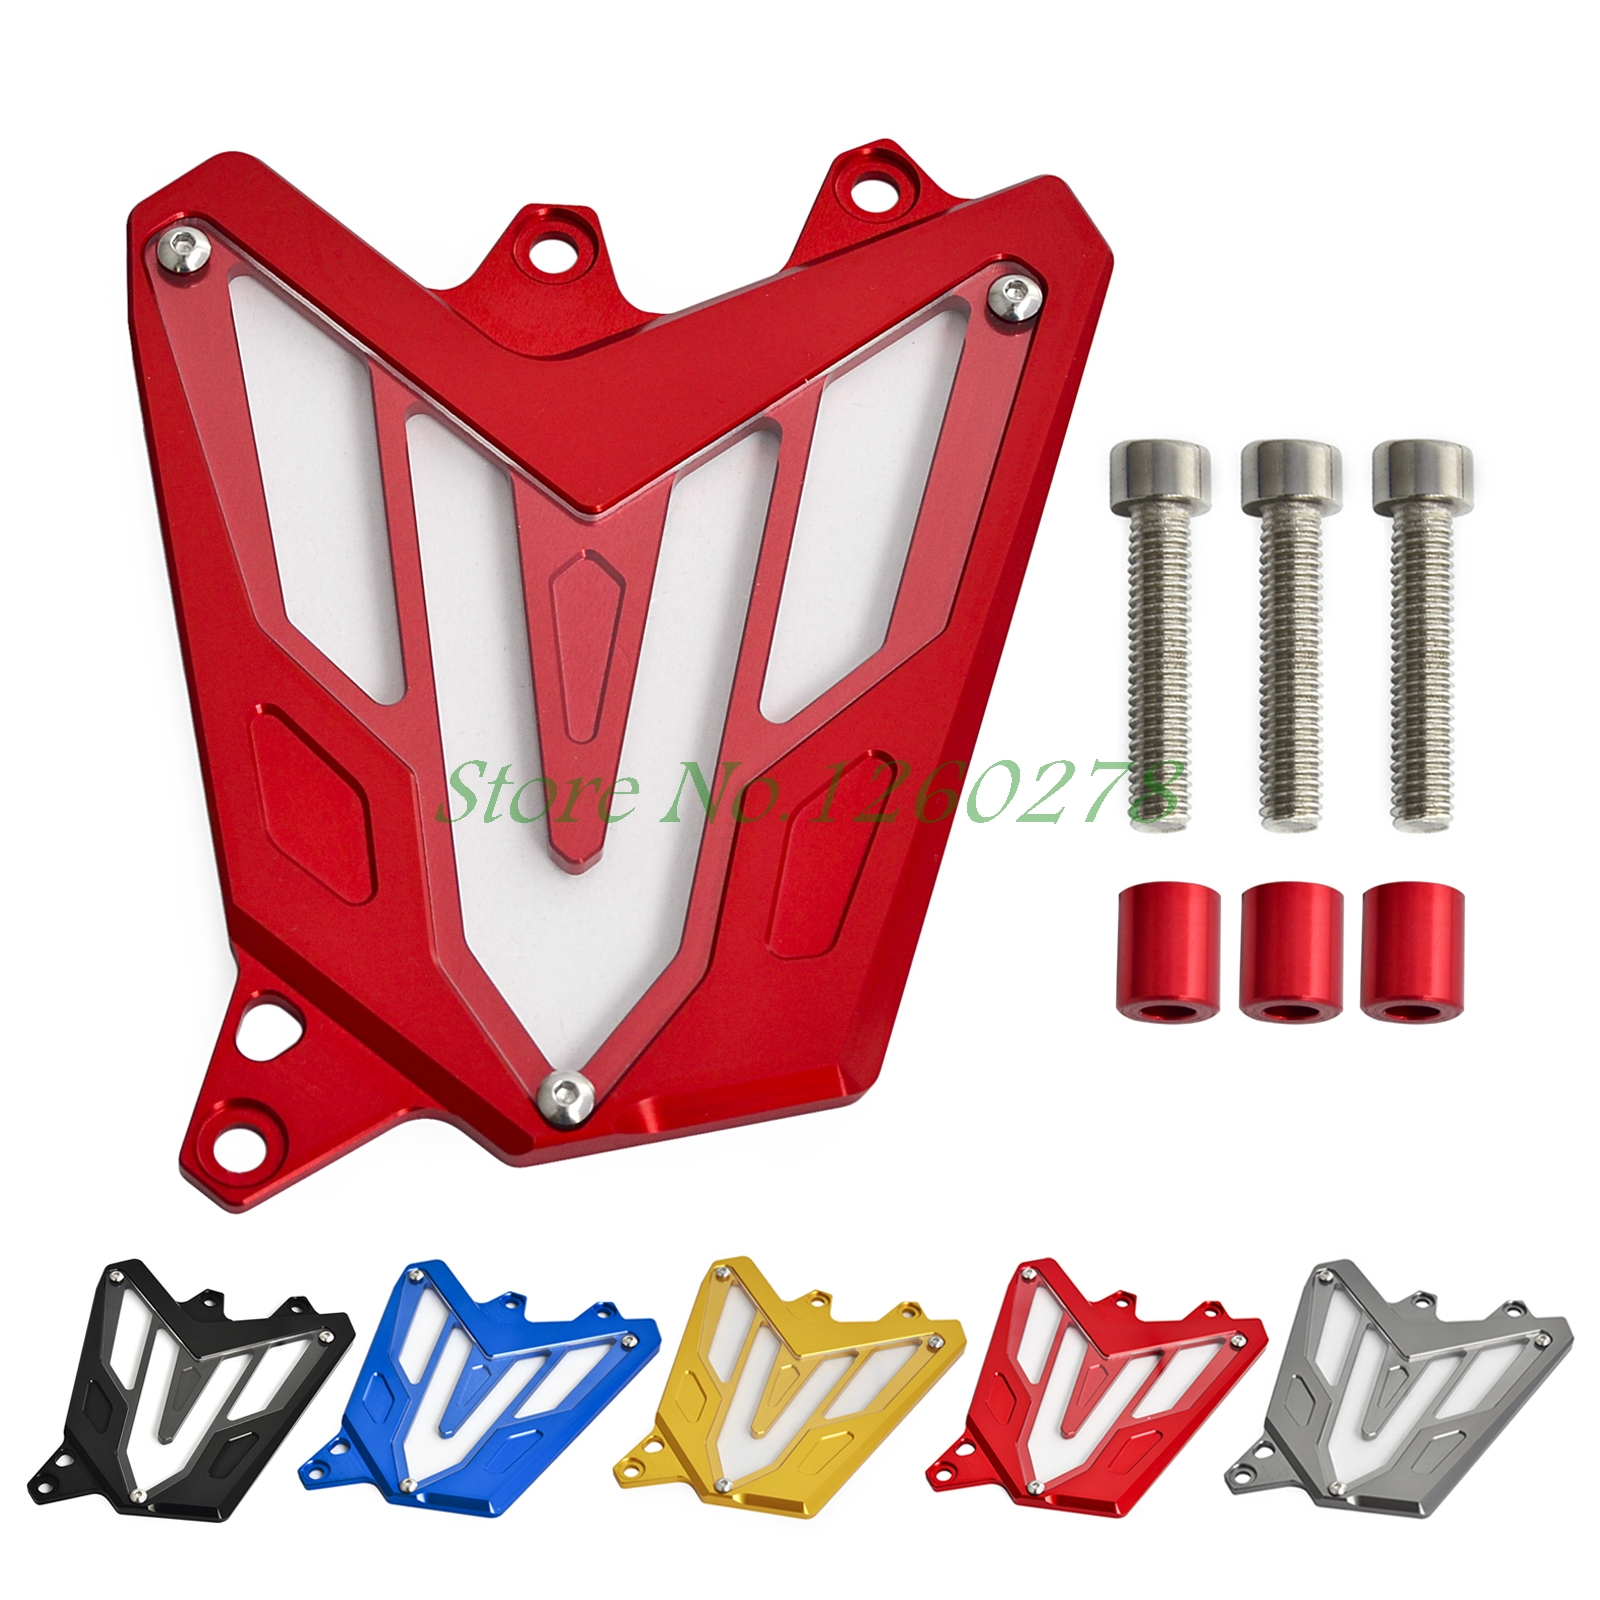 Front Sprocket Chain Cover Guide Guard Protector For Yamaha MT-07 FZ-07 MT07 FZ07  2013 2014 2015 2016 mgoodoo cnc aluminum motorcycle left engine guard chain protector front sprocket cover panel for yamaha r3 r25 2014 2015 2016